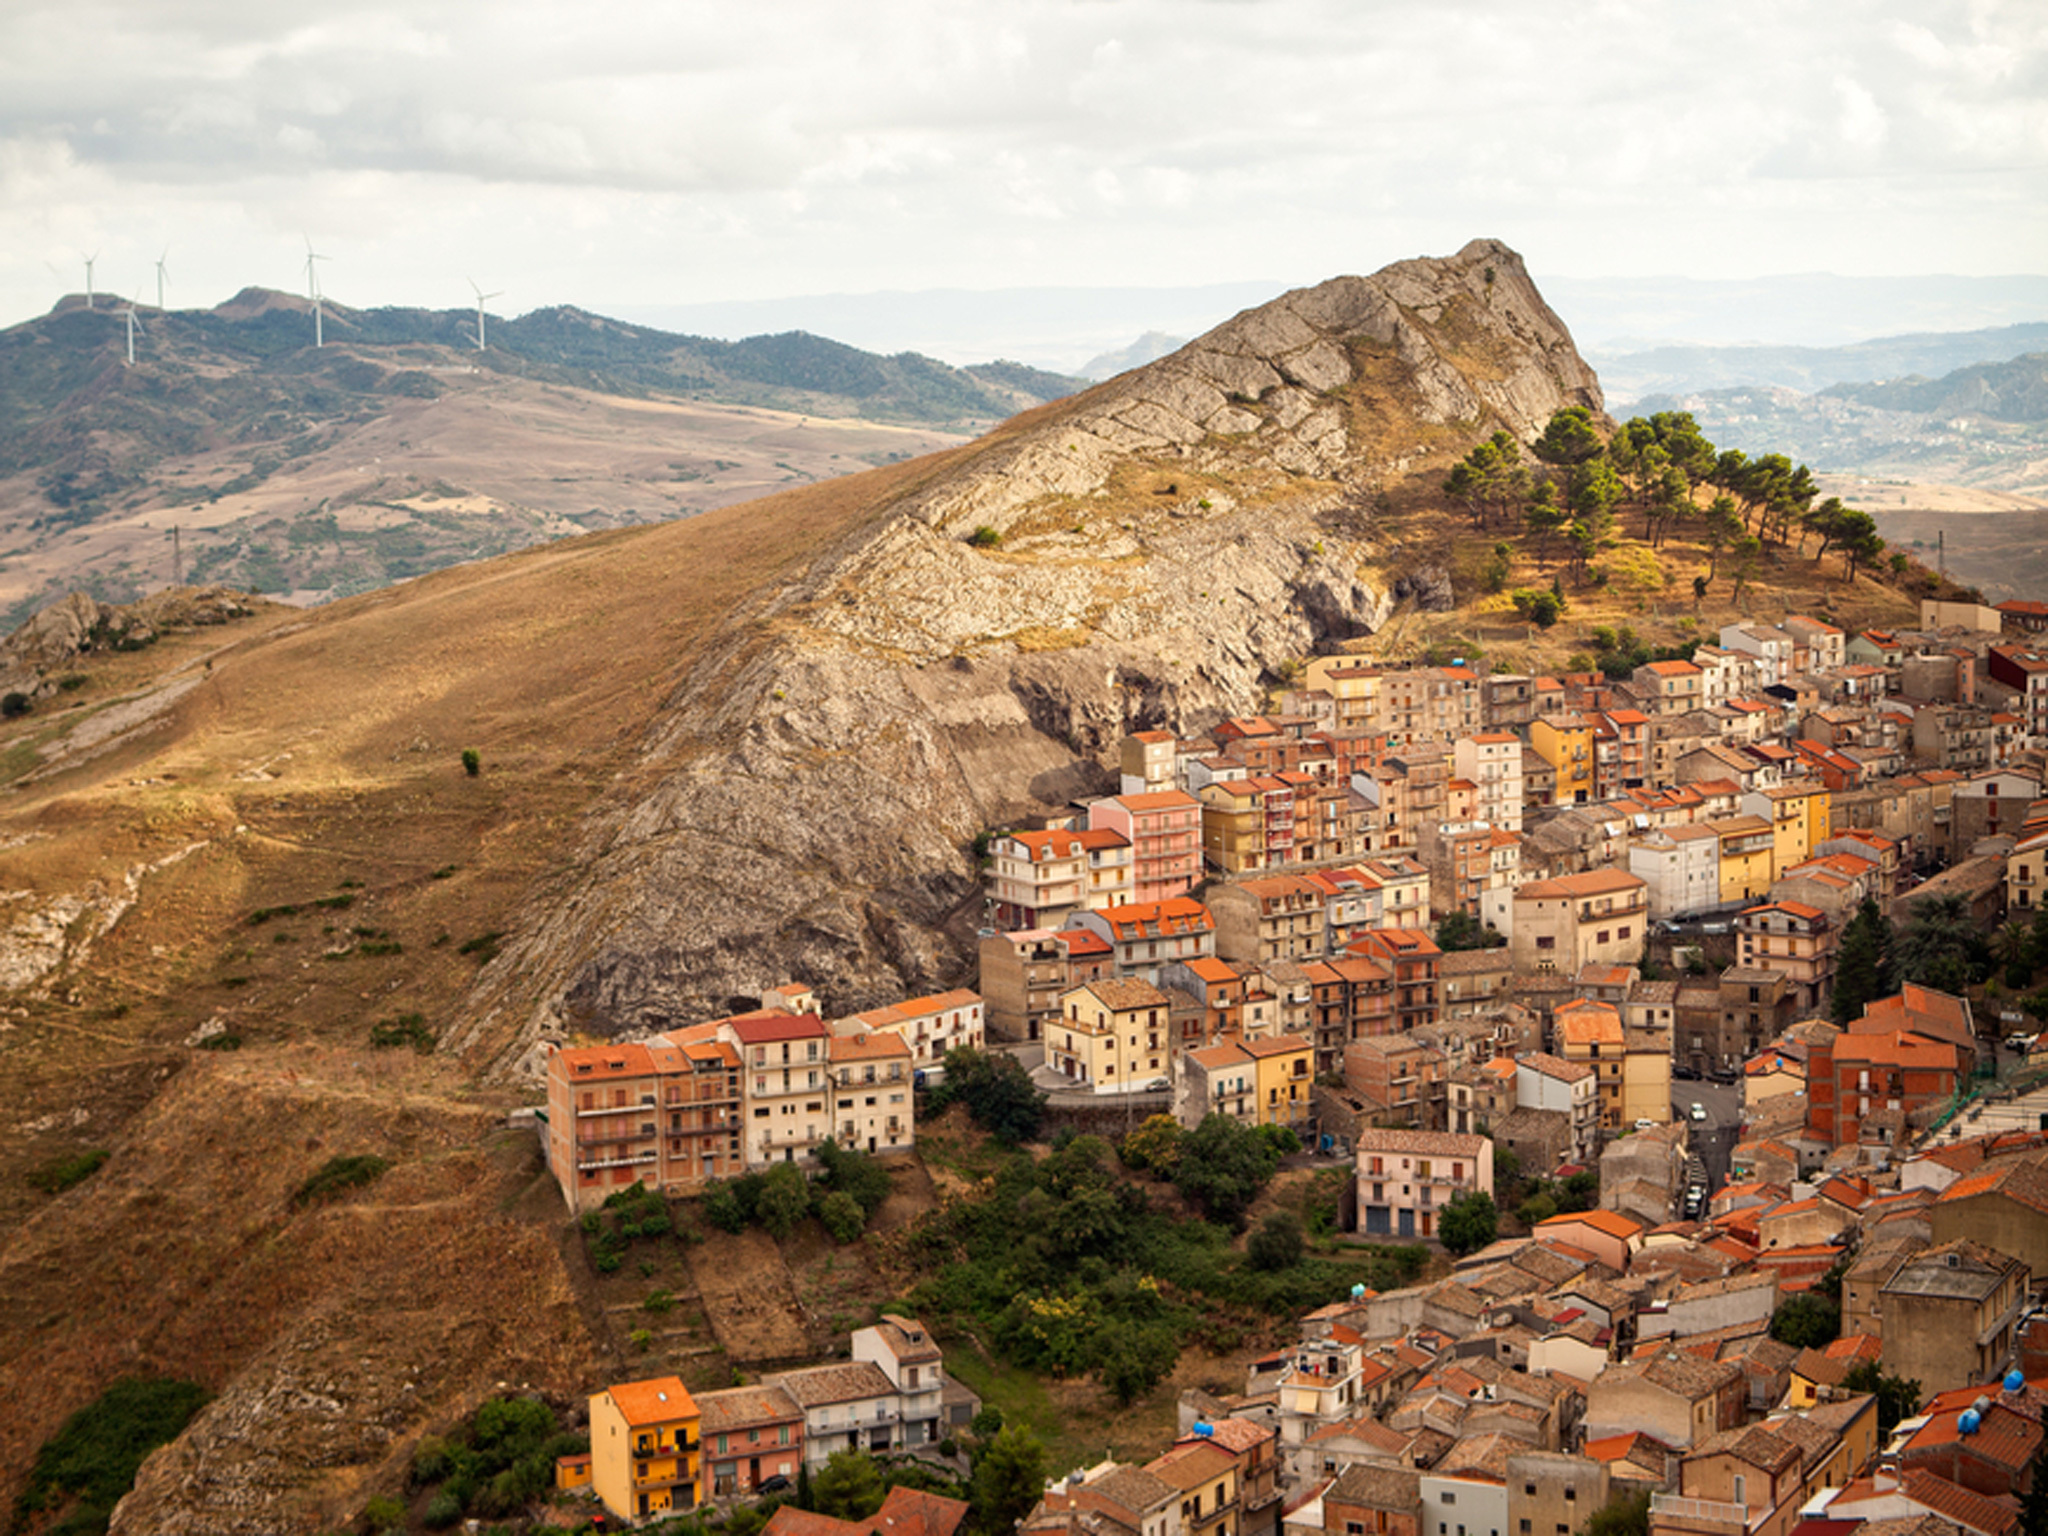 A town in Sicily is selling €1 houses – and it'll pay you to fix one up